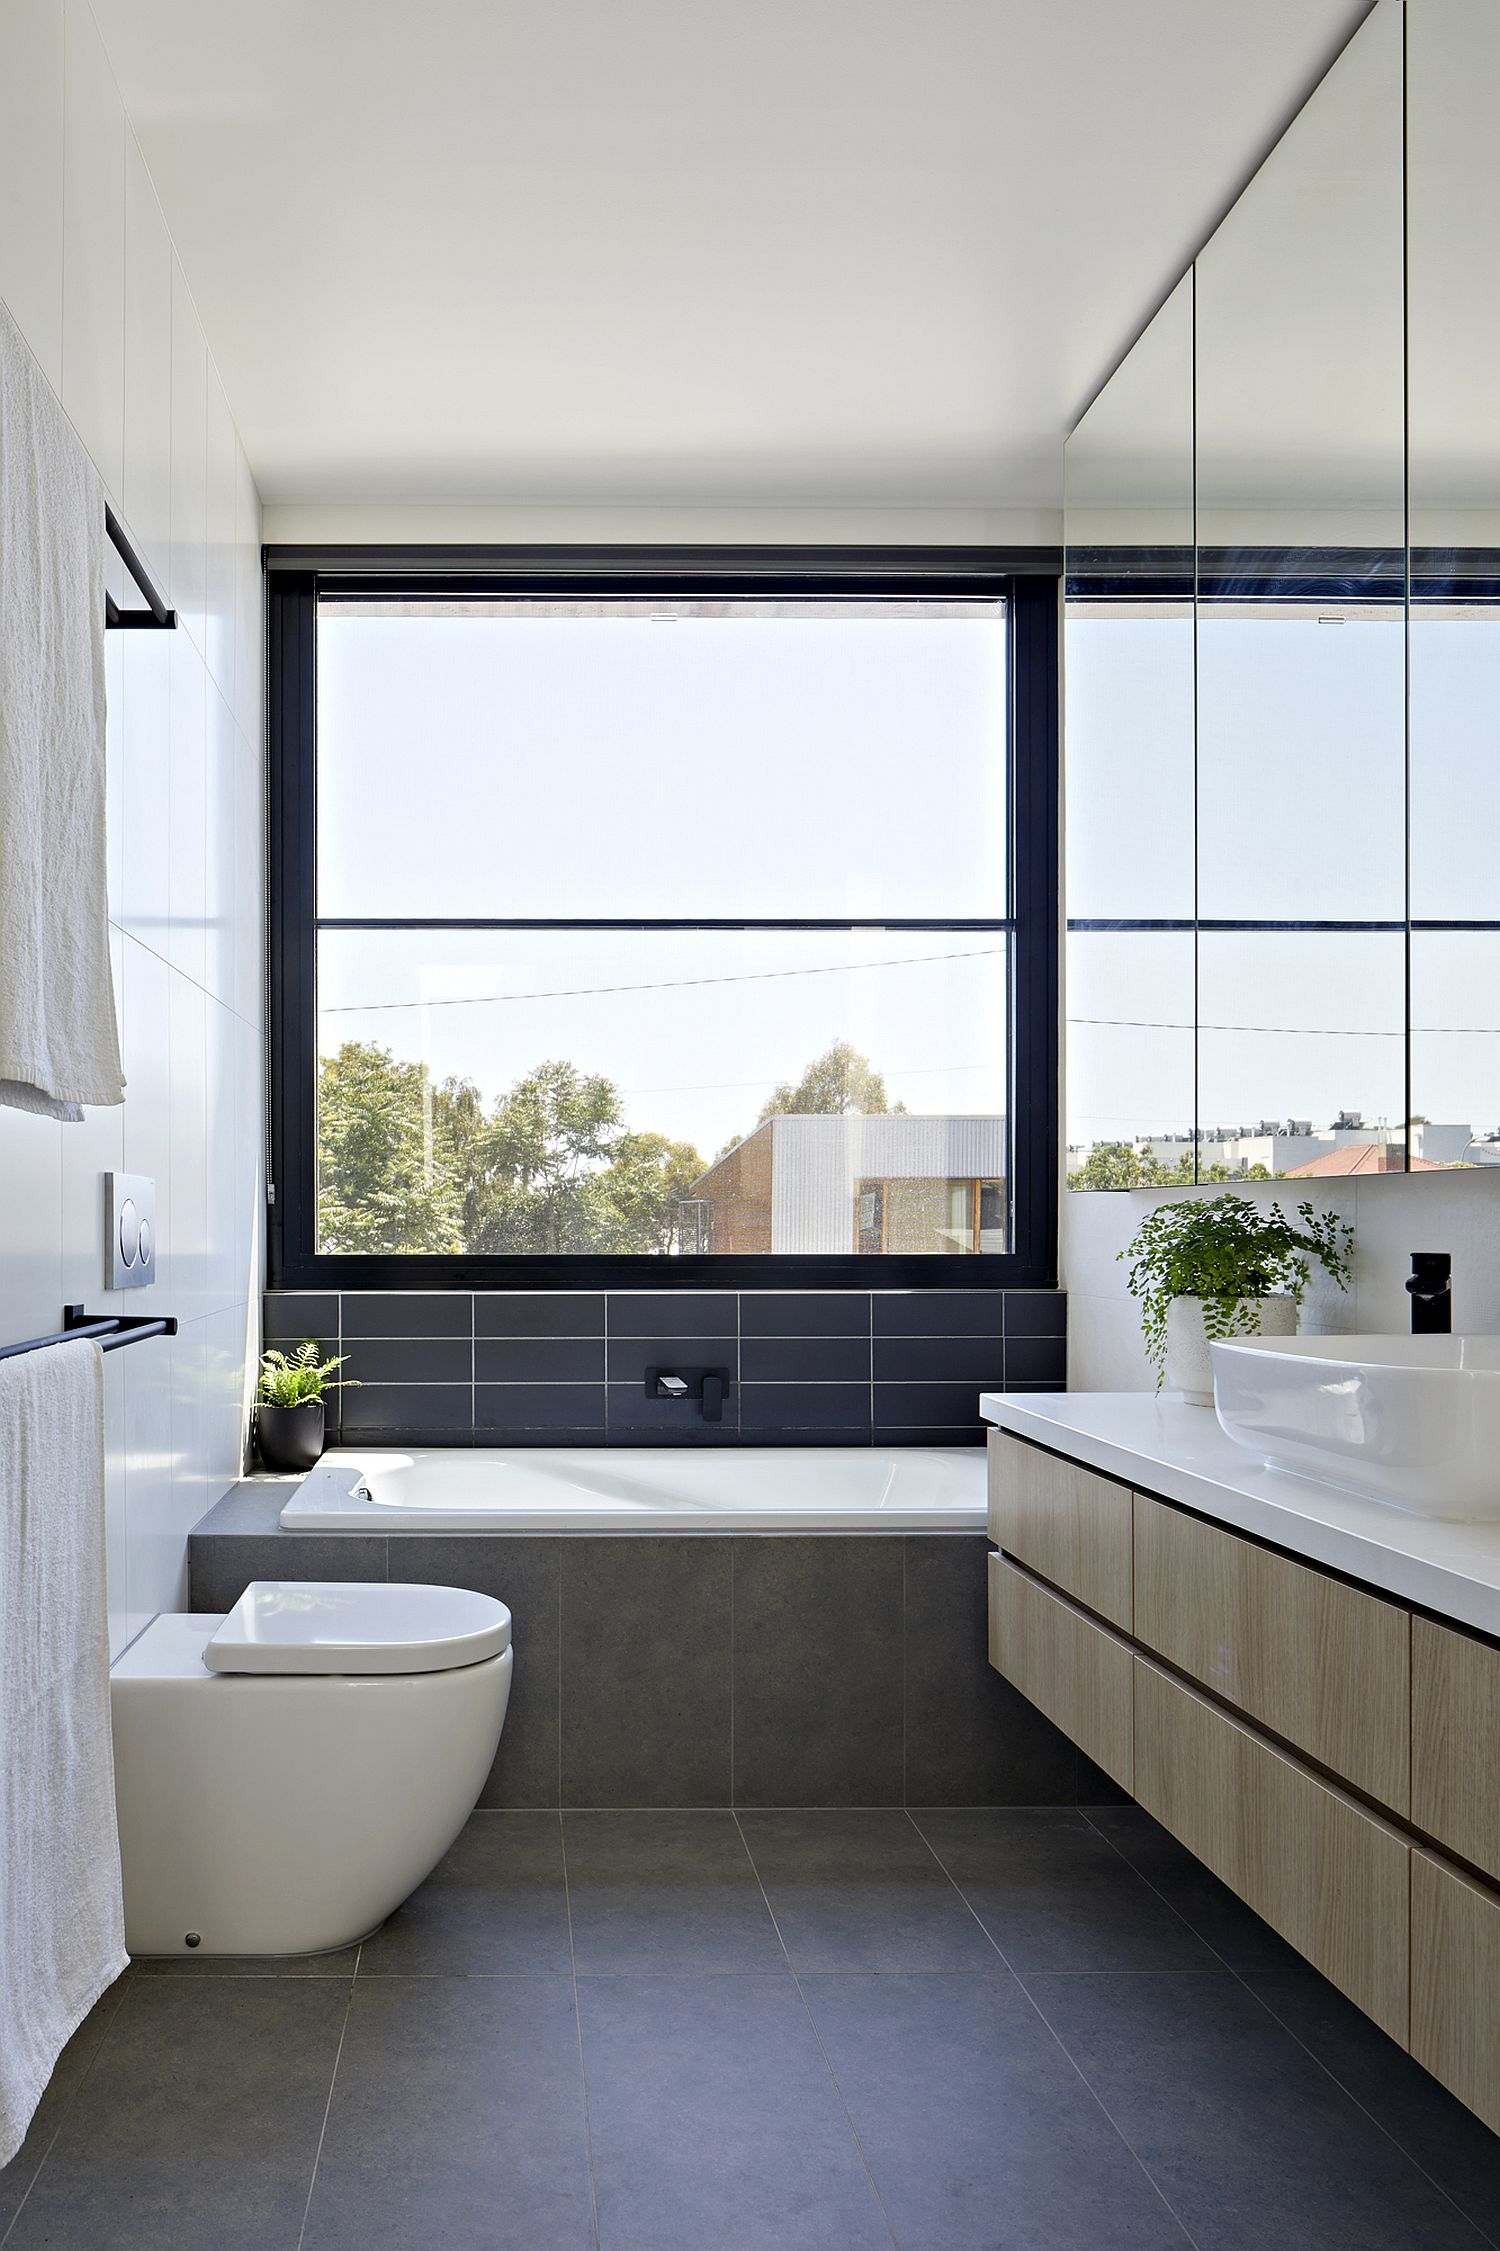 Spacious and elegant contemporary bathroom in gray and white